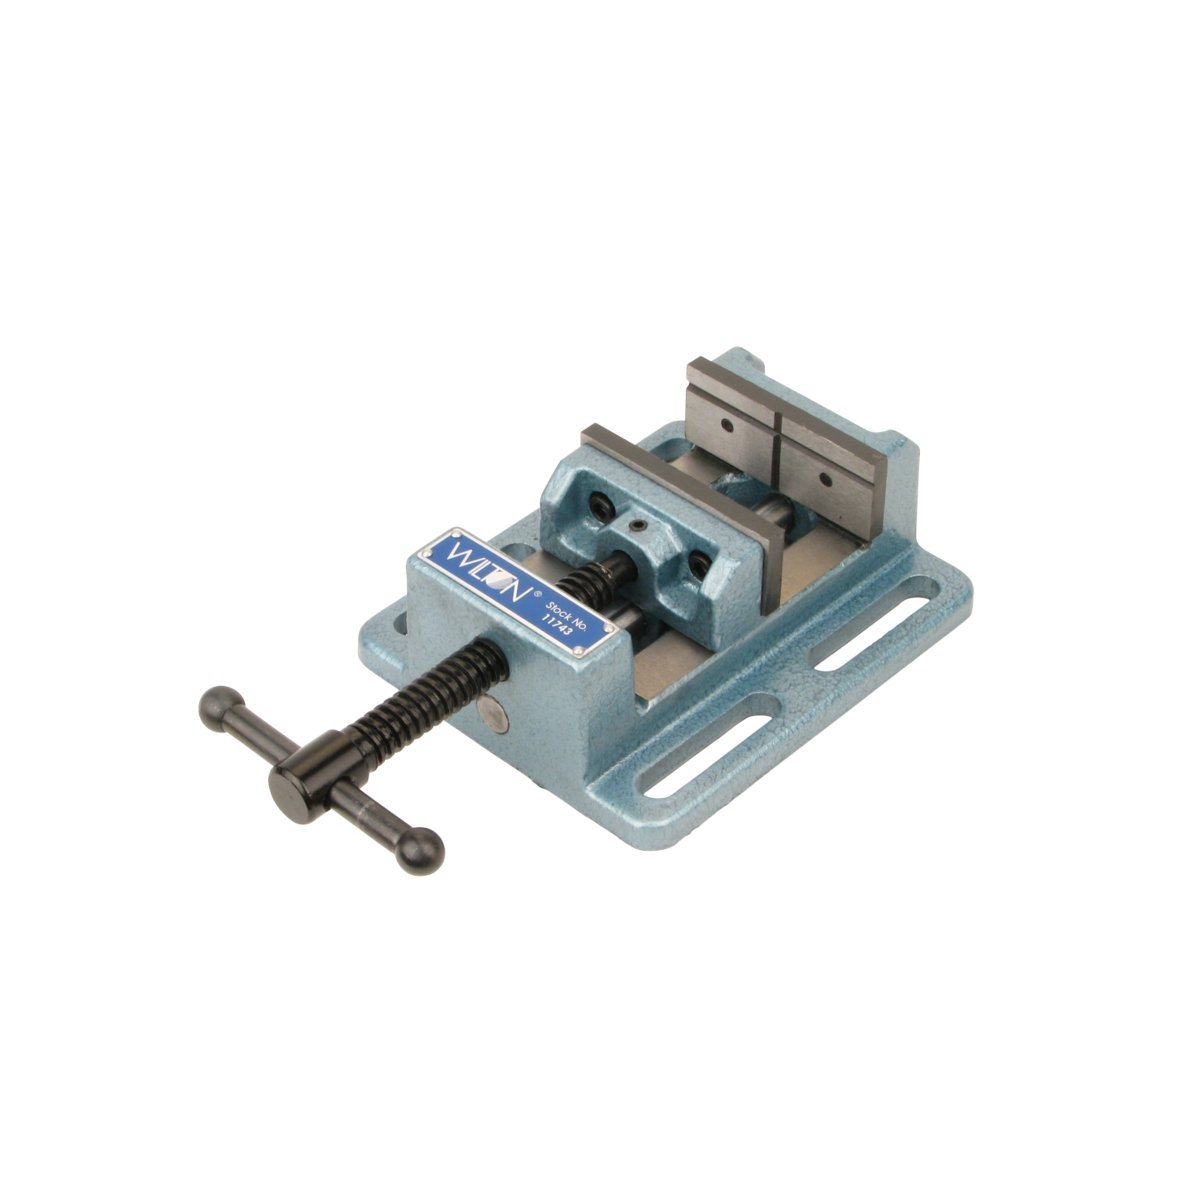 Wilton 11744 4-Inch Low Profile Drill Press Vise